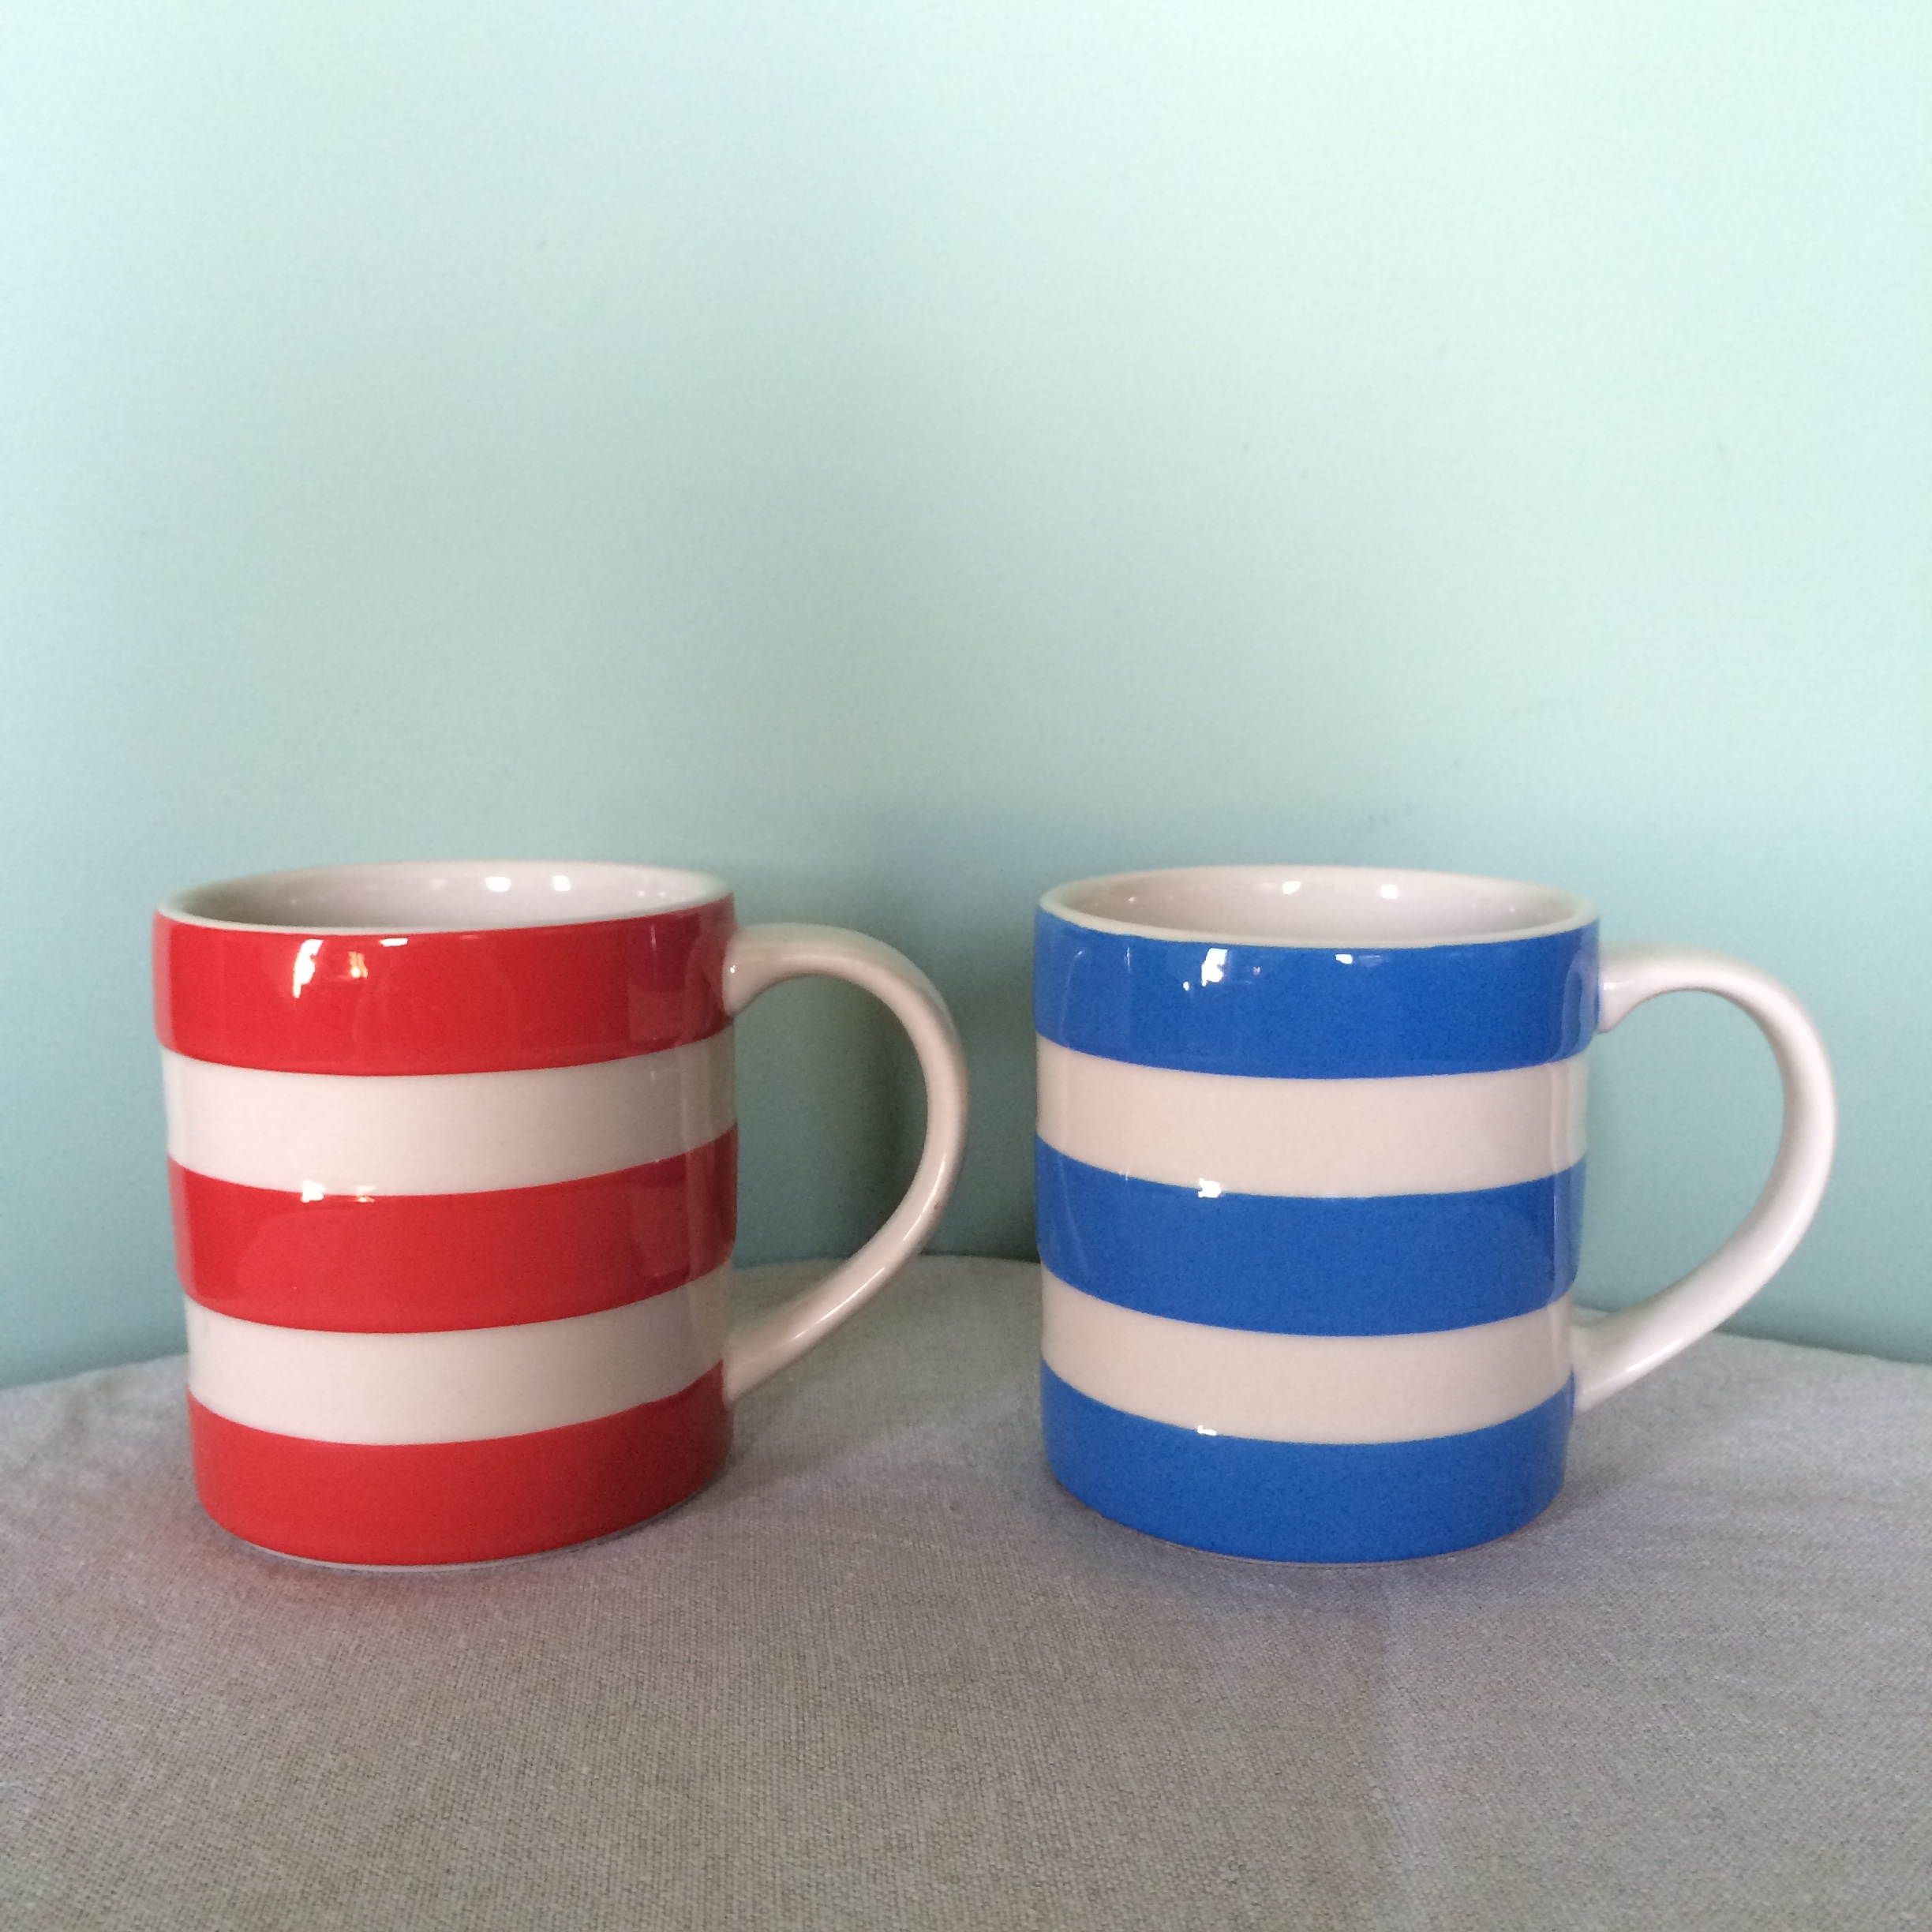 Cornish Ware Mug 6oz